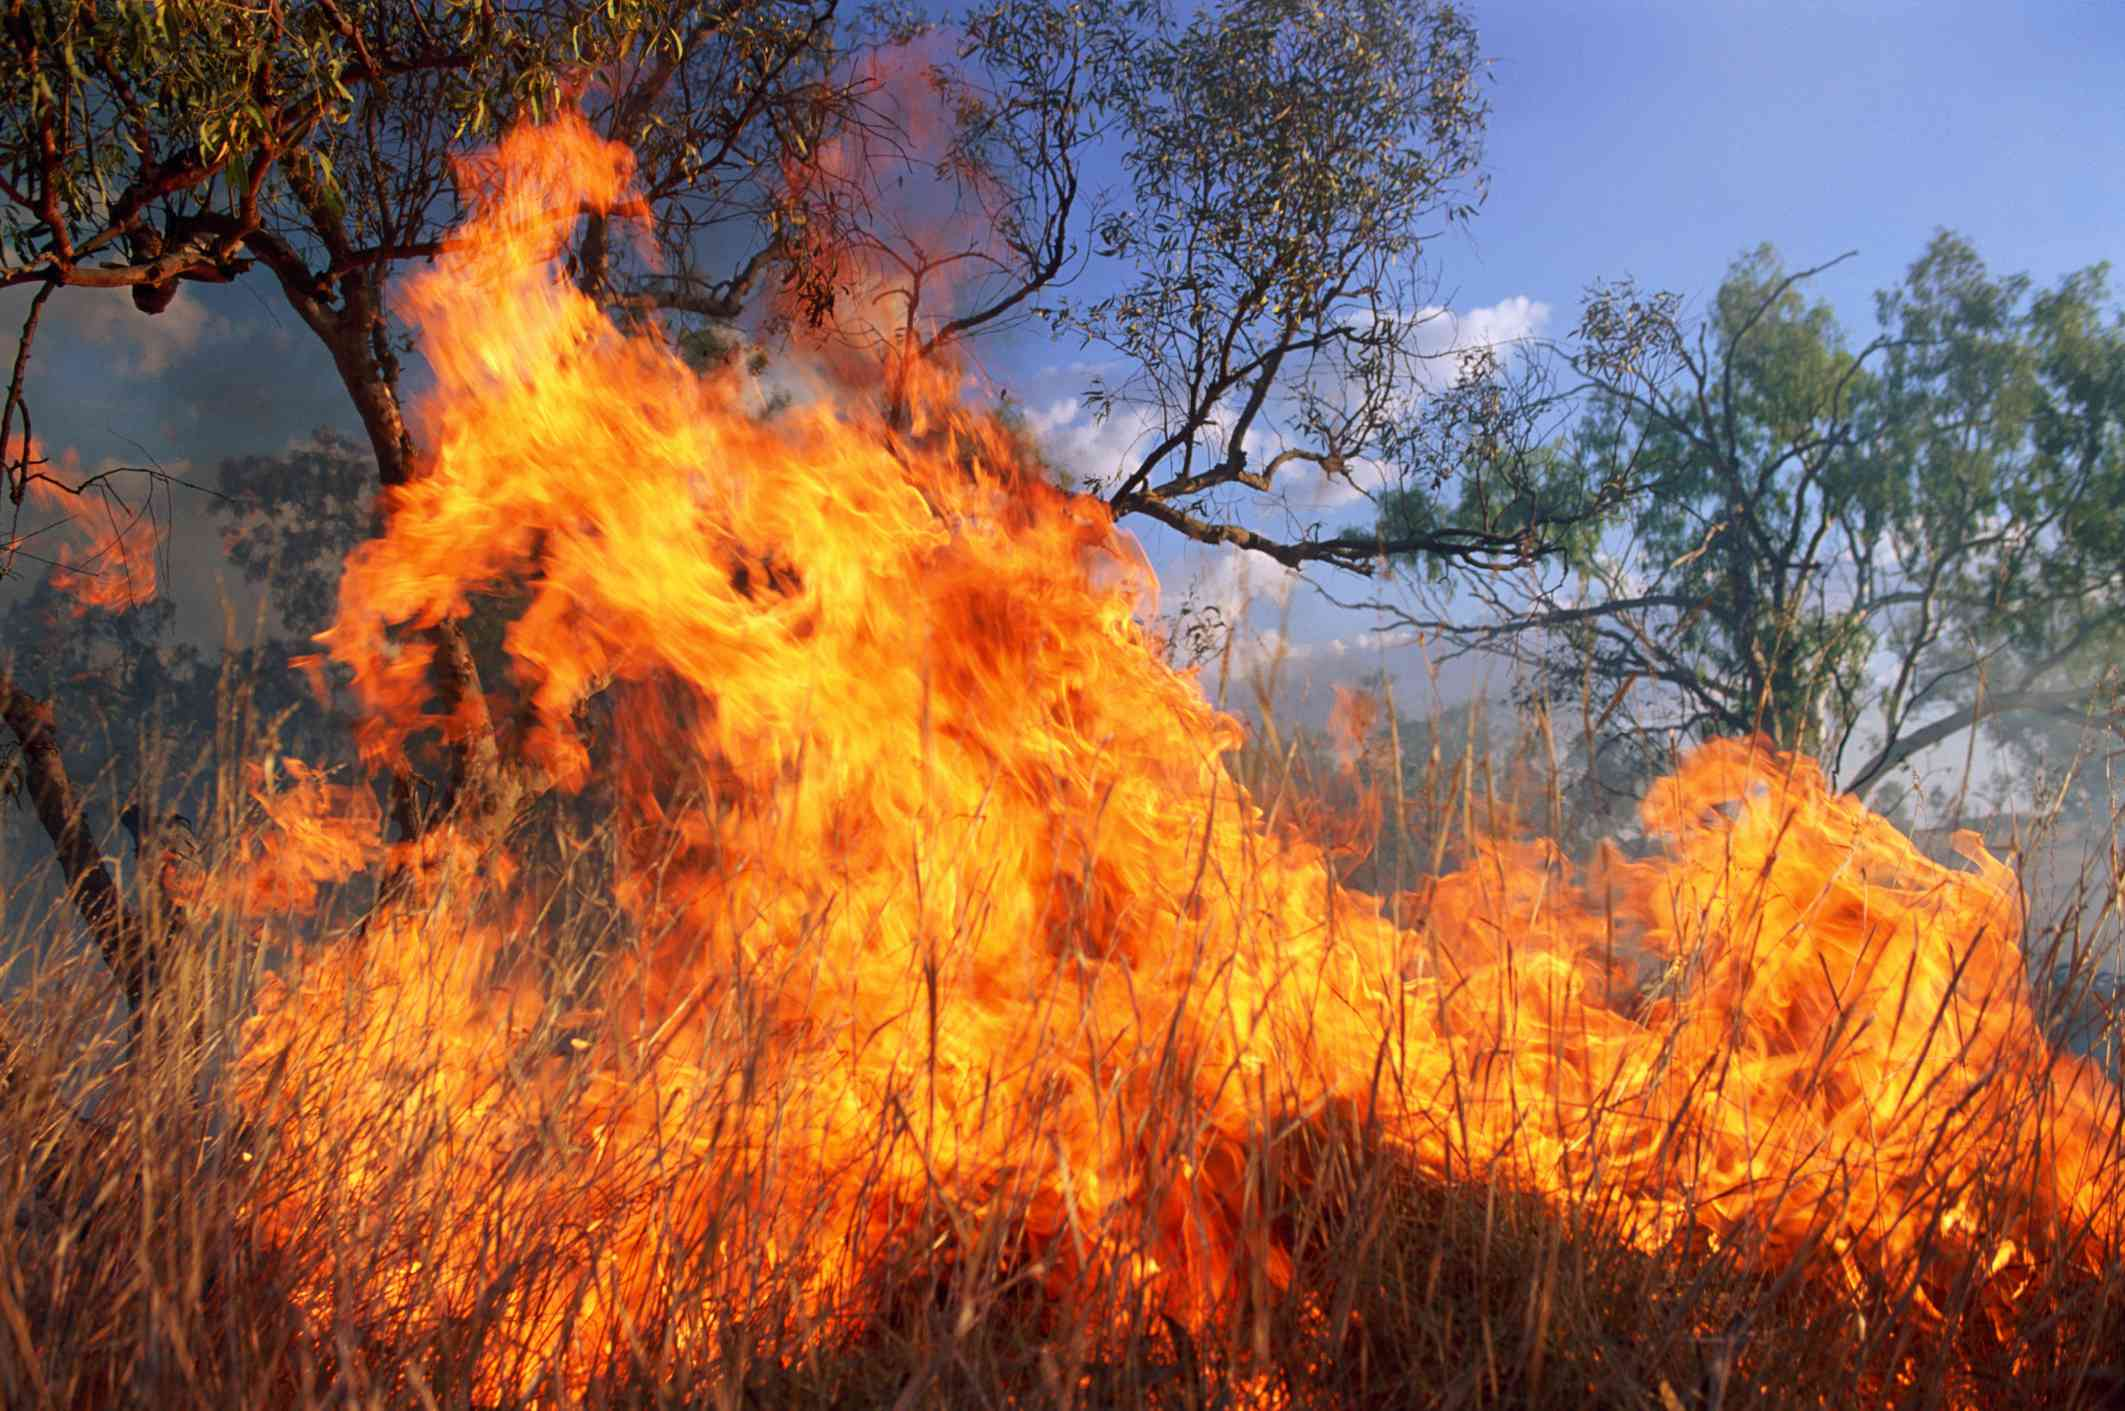 A close-up view of wind-blown wildfire flames